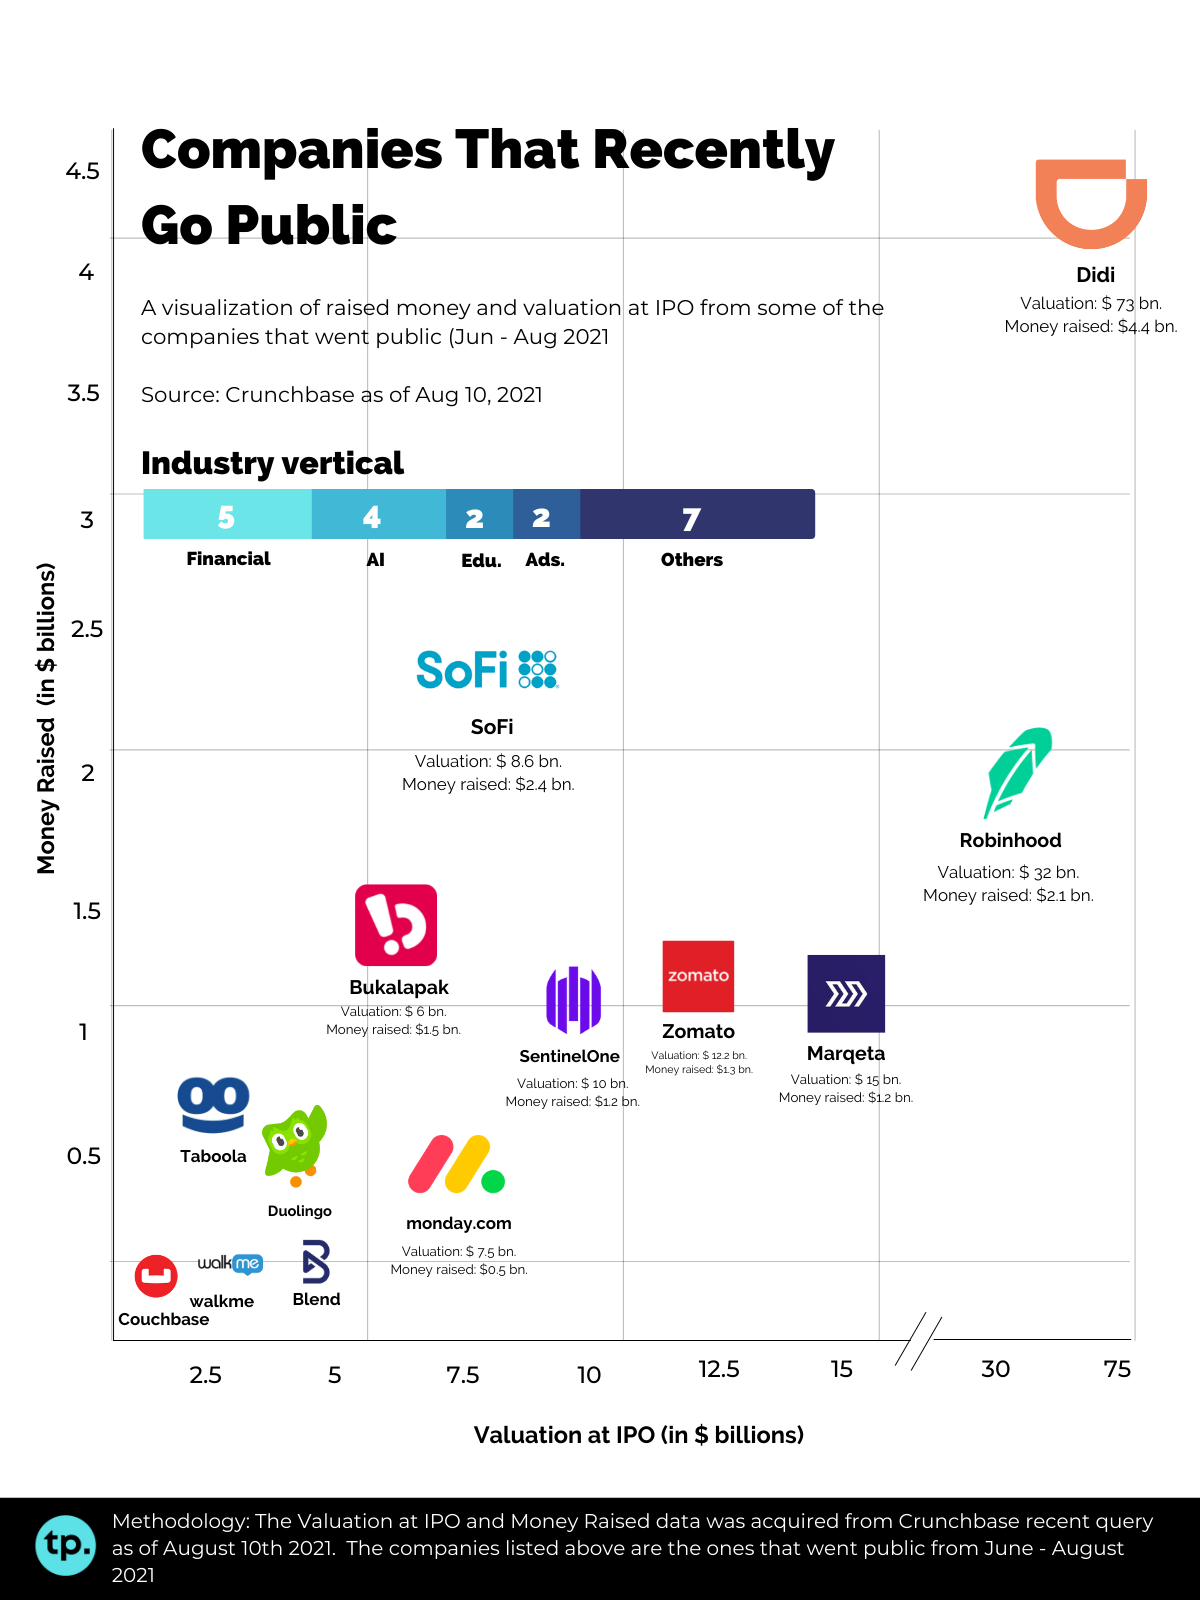 Companies that recently went public